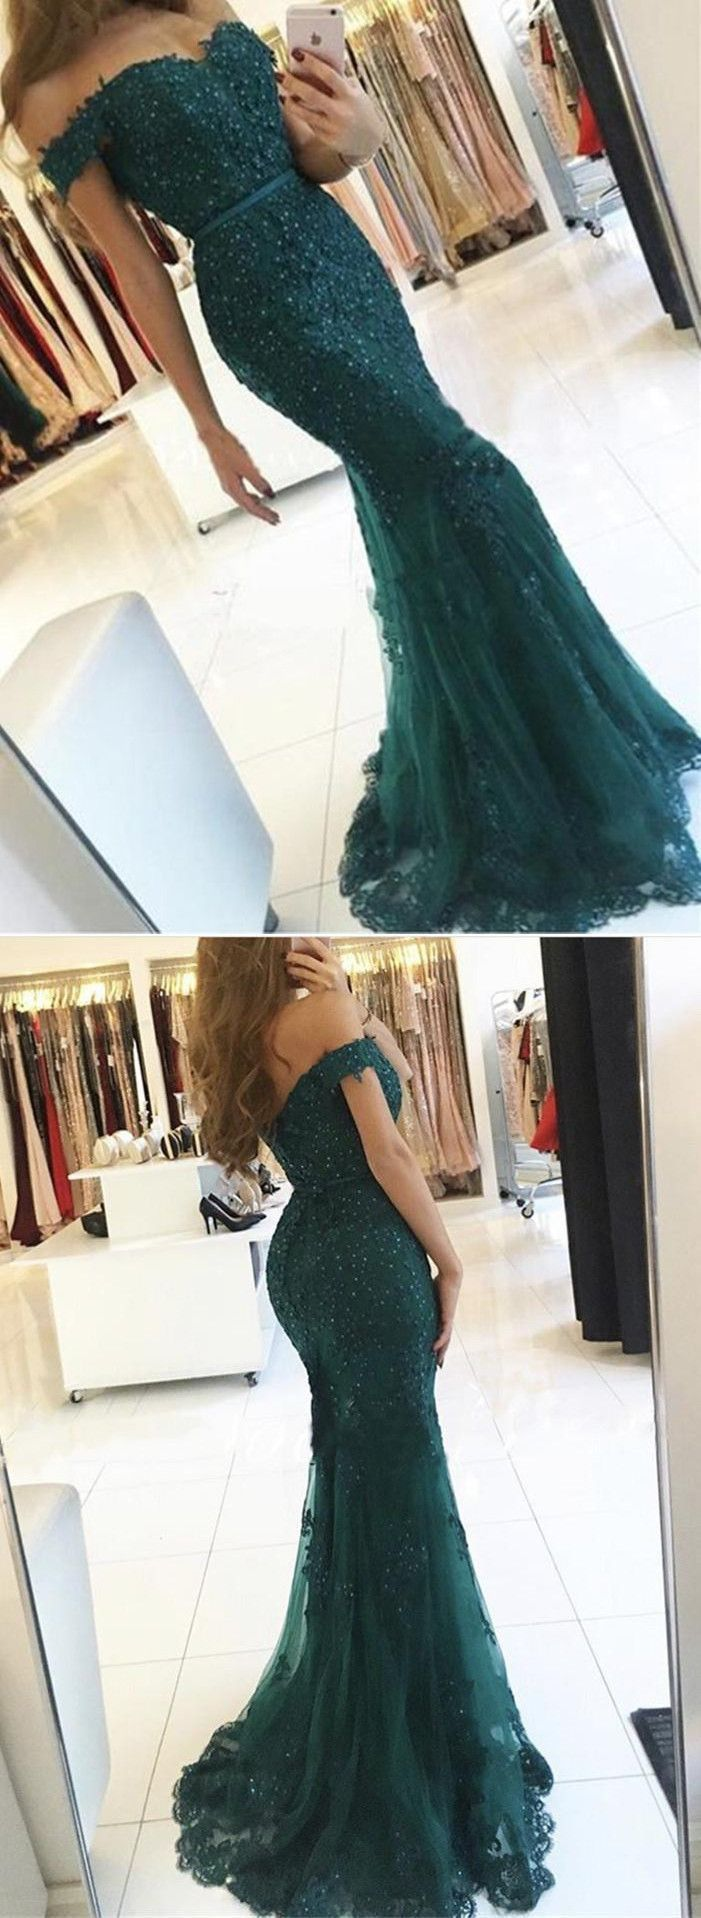 Emerald Green Off Shoulder Lace Prom Dress, Emerald Green Green Formal Dress, Lace Bridesmaid Dress #greenpromdress #prom #promdress #lacepromdress #prom2018 #prom2k18 #offshoulderpromdress #offshoulderdress #offshoulder #lacedress #lace #dresses #greendress #green #formaldress #laceprom